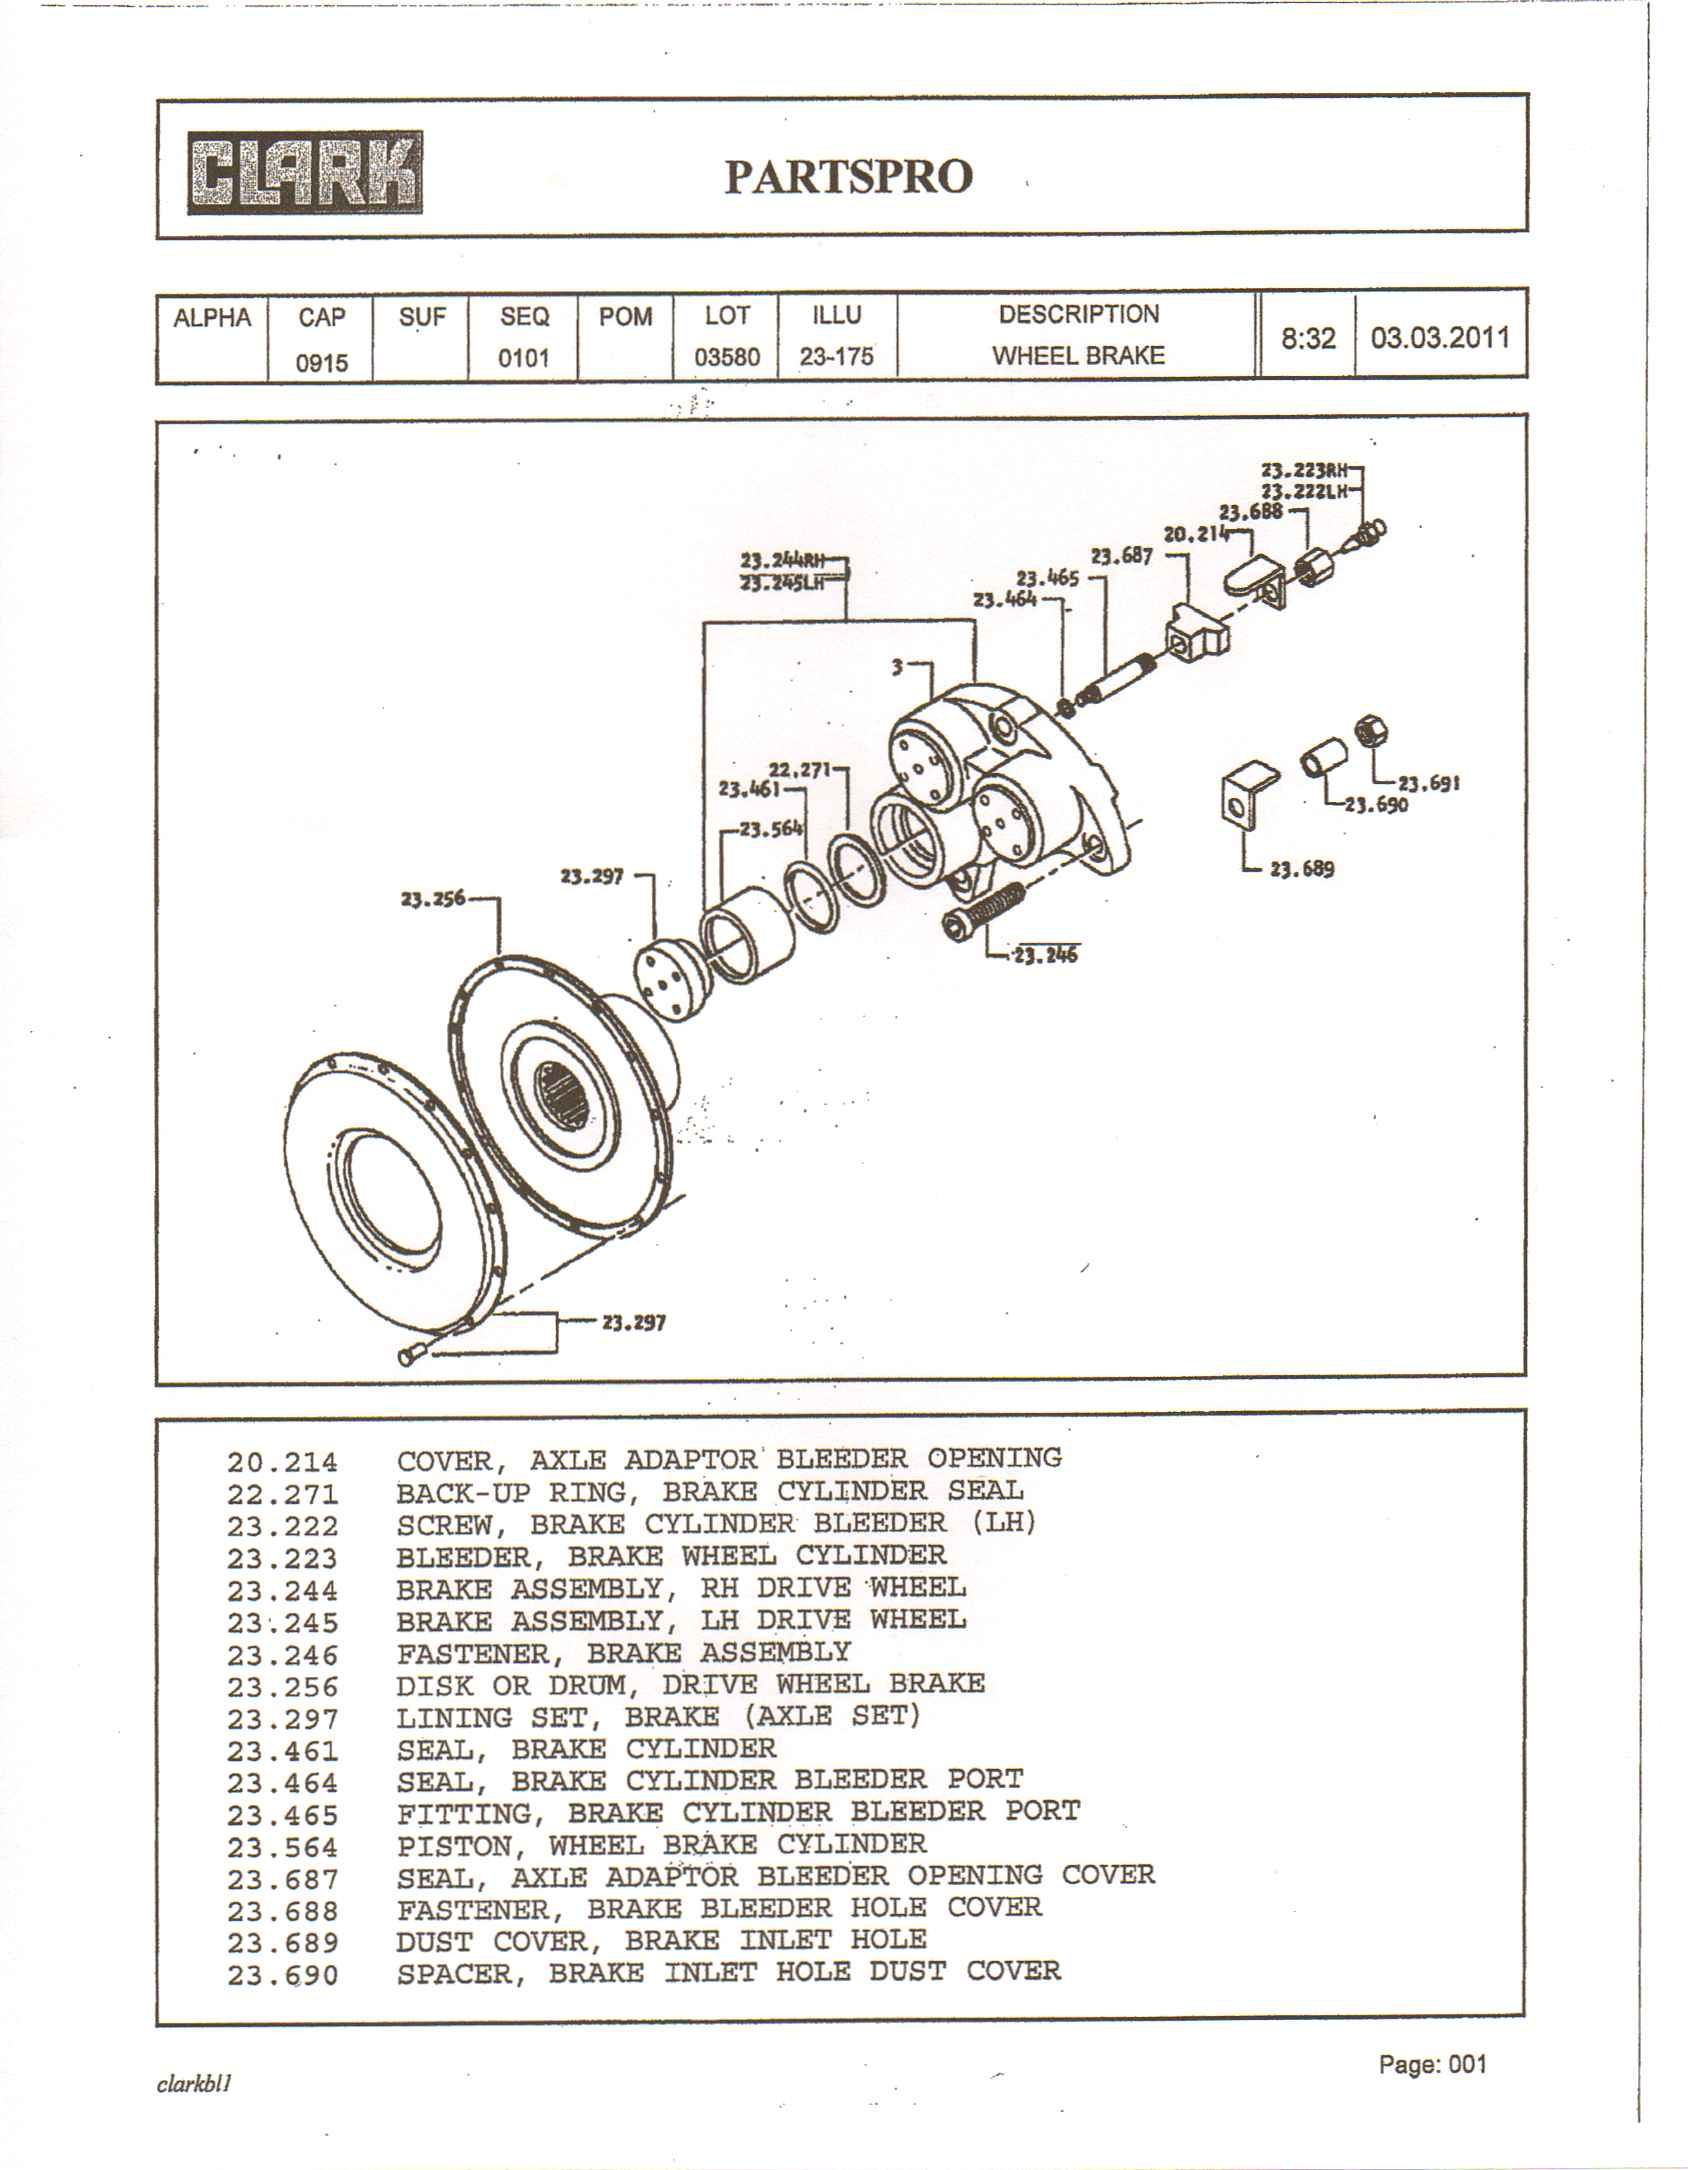 Subwoofer Wiring moreover 2001 F150 5 4 V8 Vacuum Hose Diagram in addition Document likewise Watch as well . on you will see a wiring diagram of the 1990